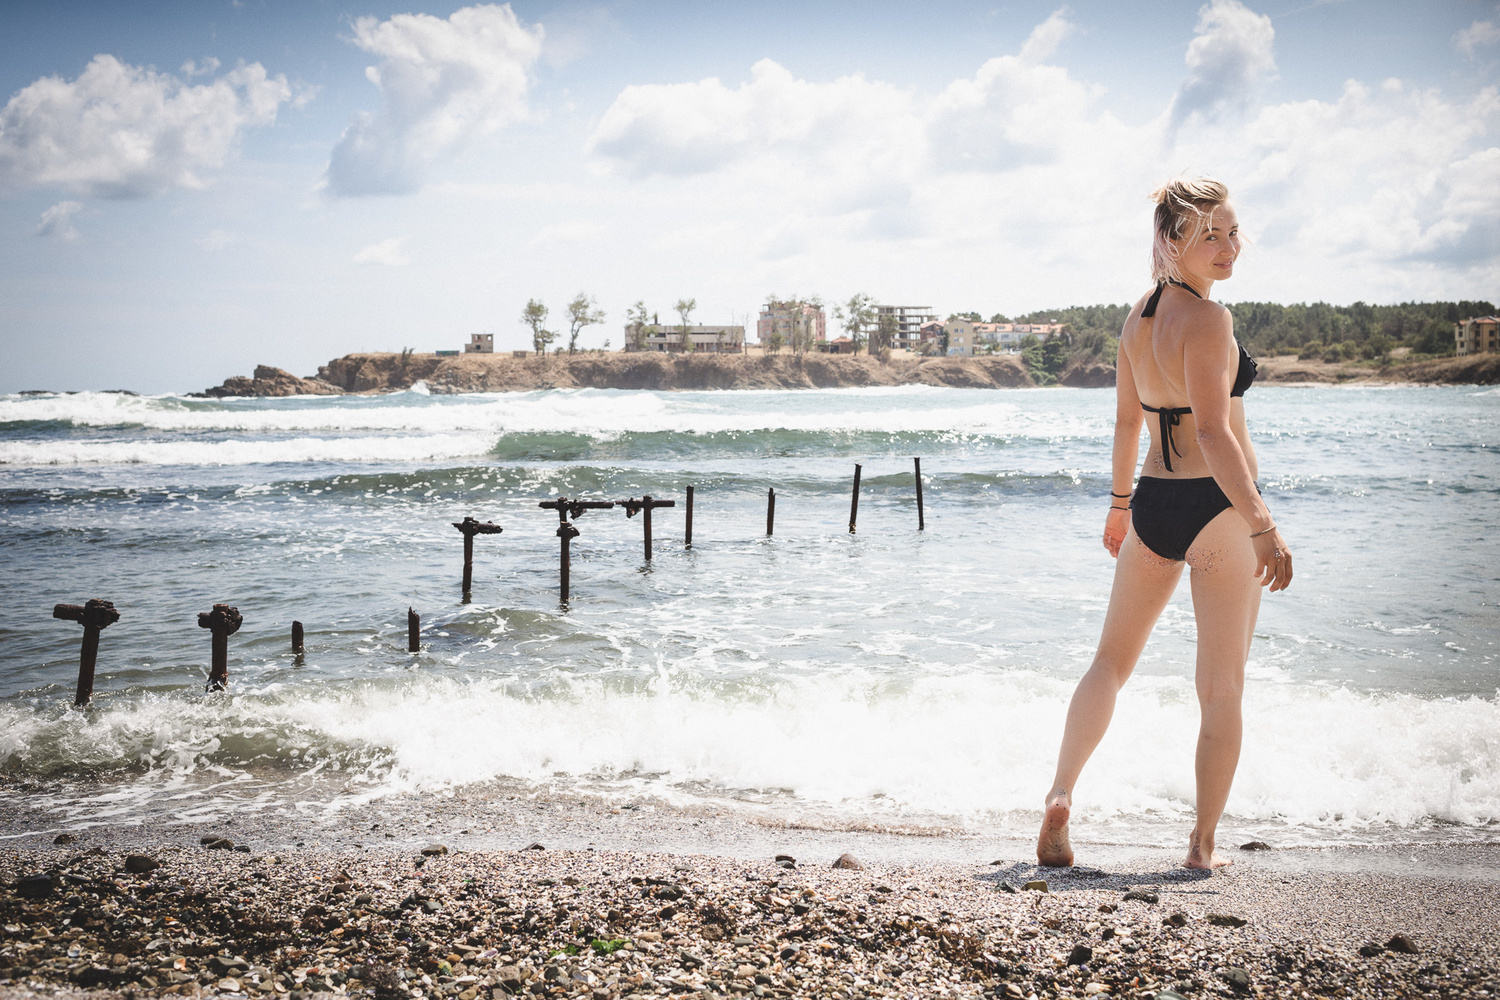 Zofia on the beach at Ahtopol, Bulgaria by Andy Day